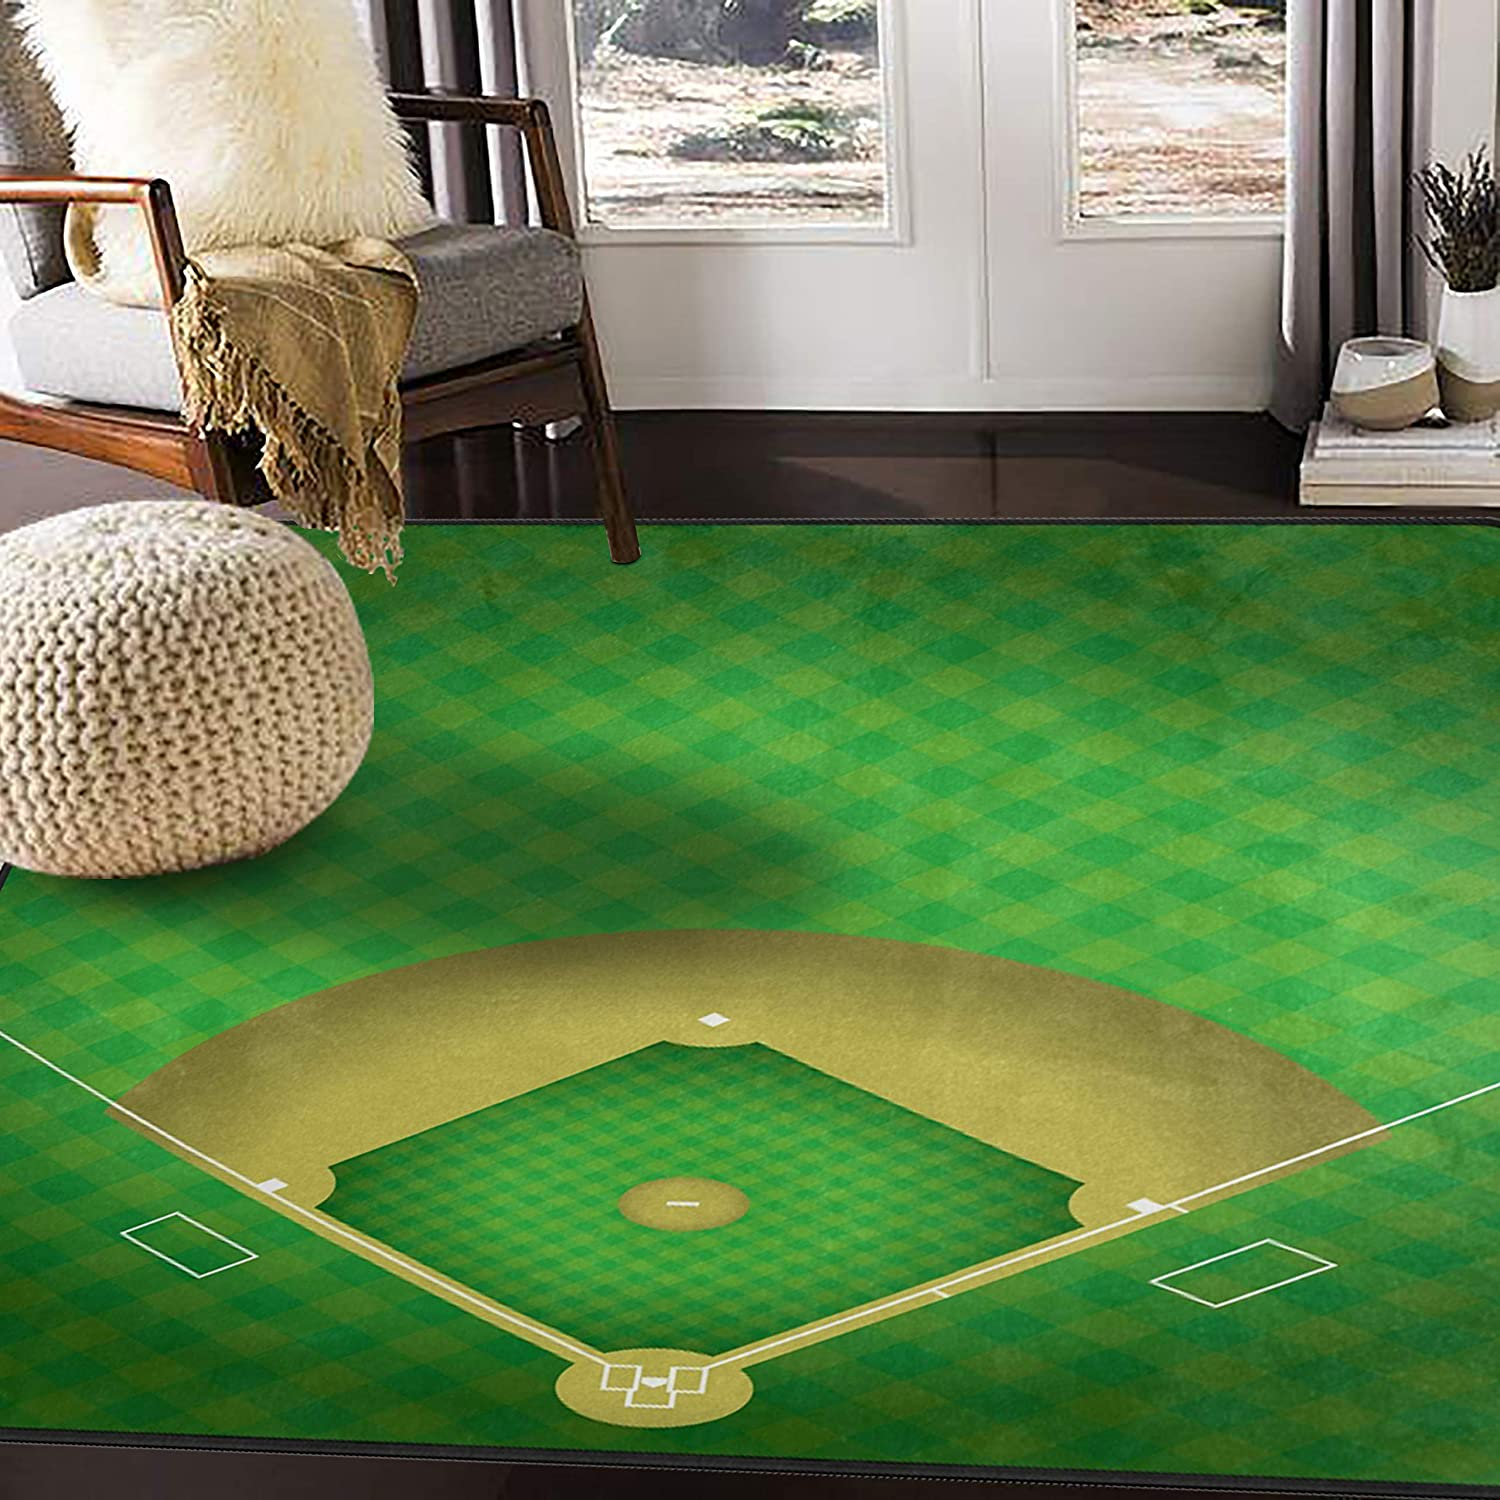 ALAZA Baseball Field Green Sport Area Max 47% OFF for Rug Rugs Living B Room online shop